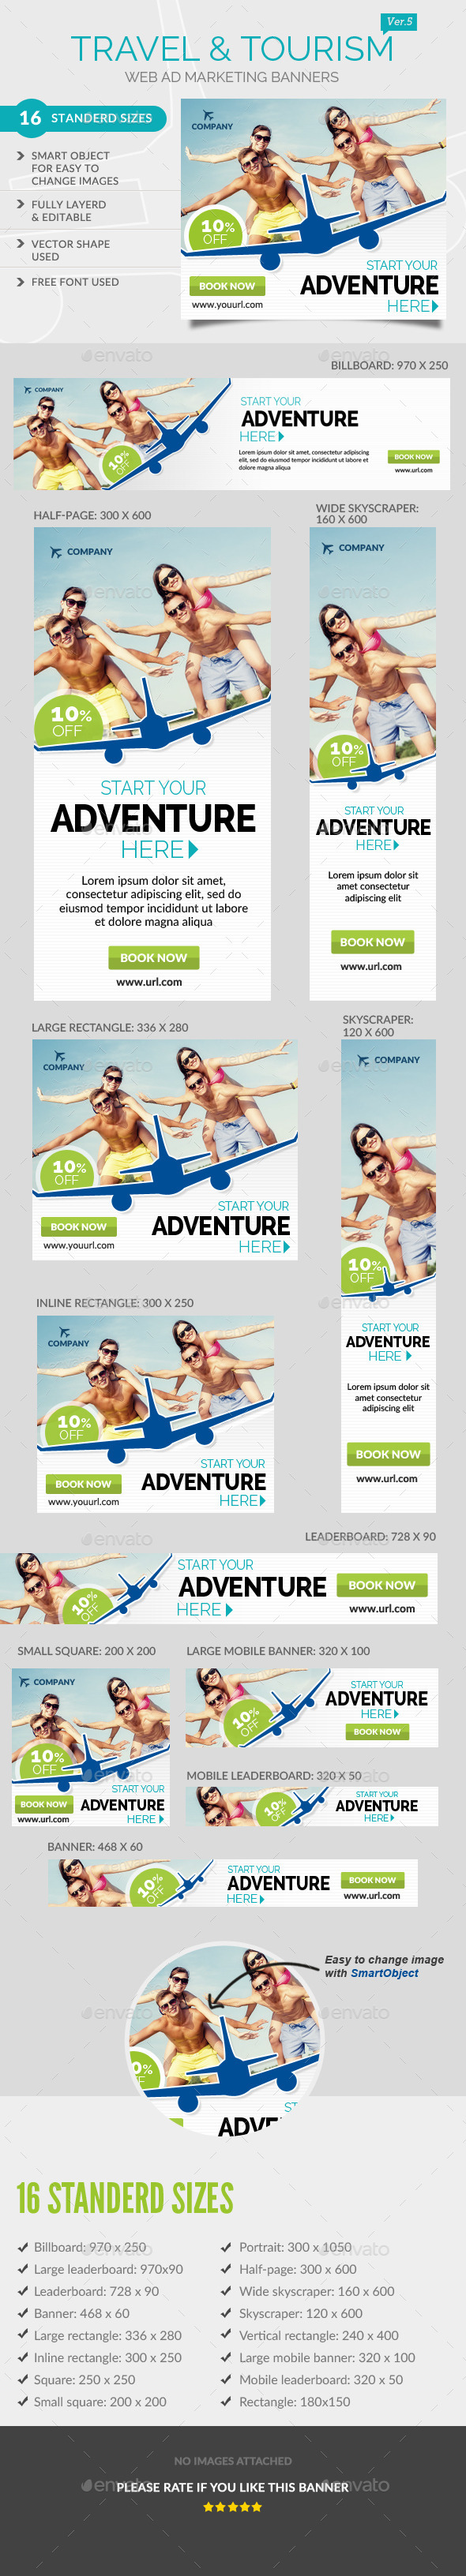 Travel Ad Banners - Banners & Ads Web Elements